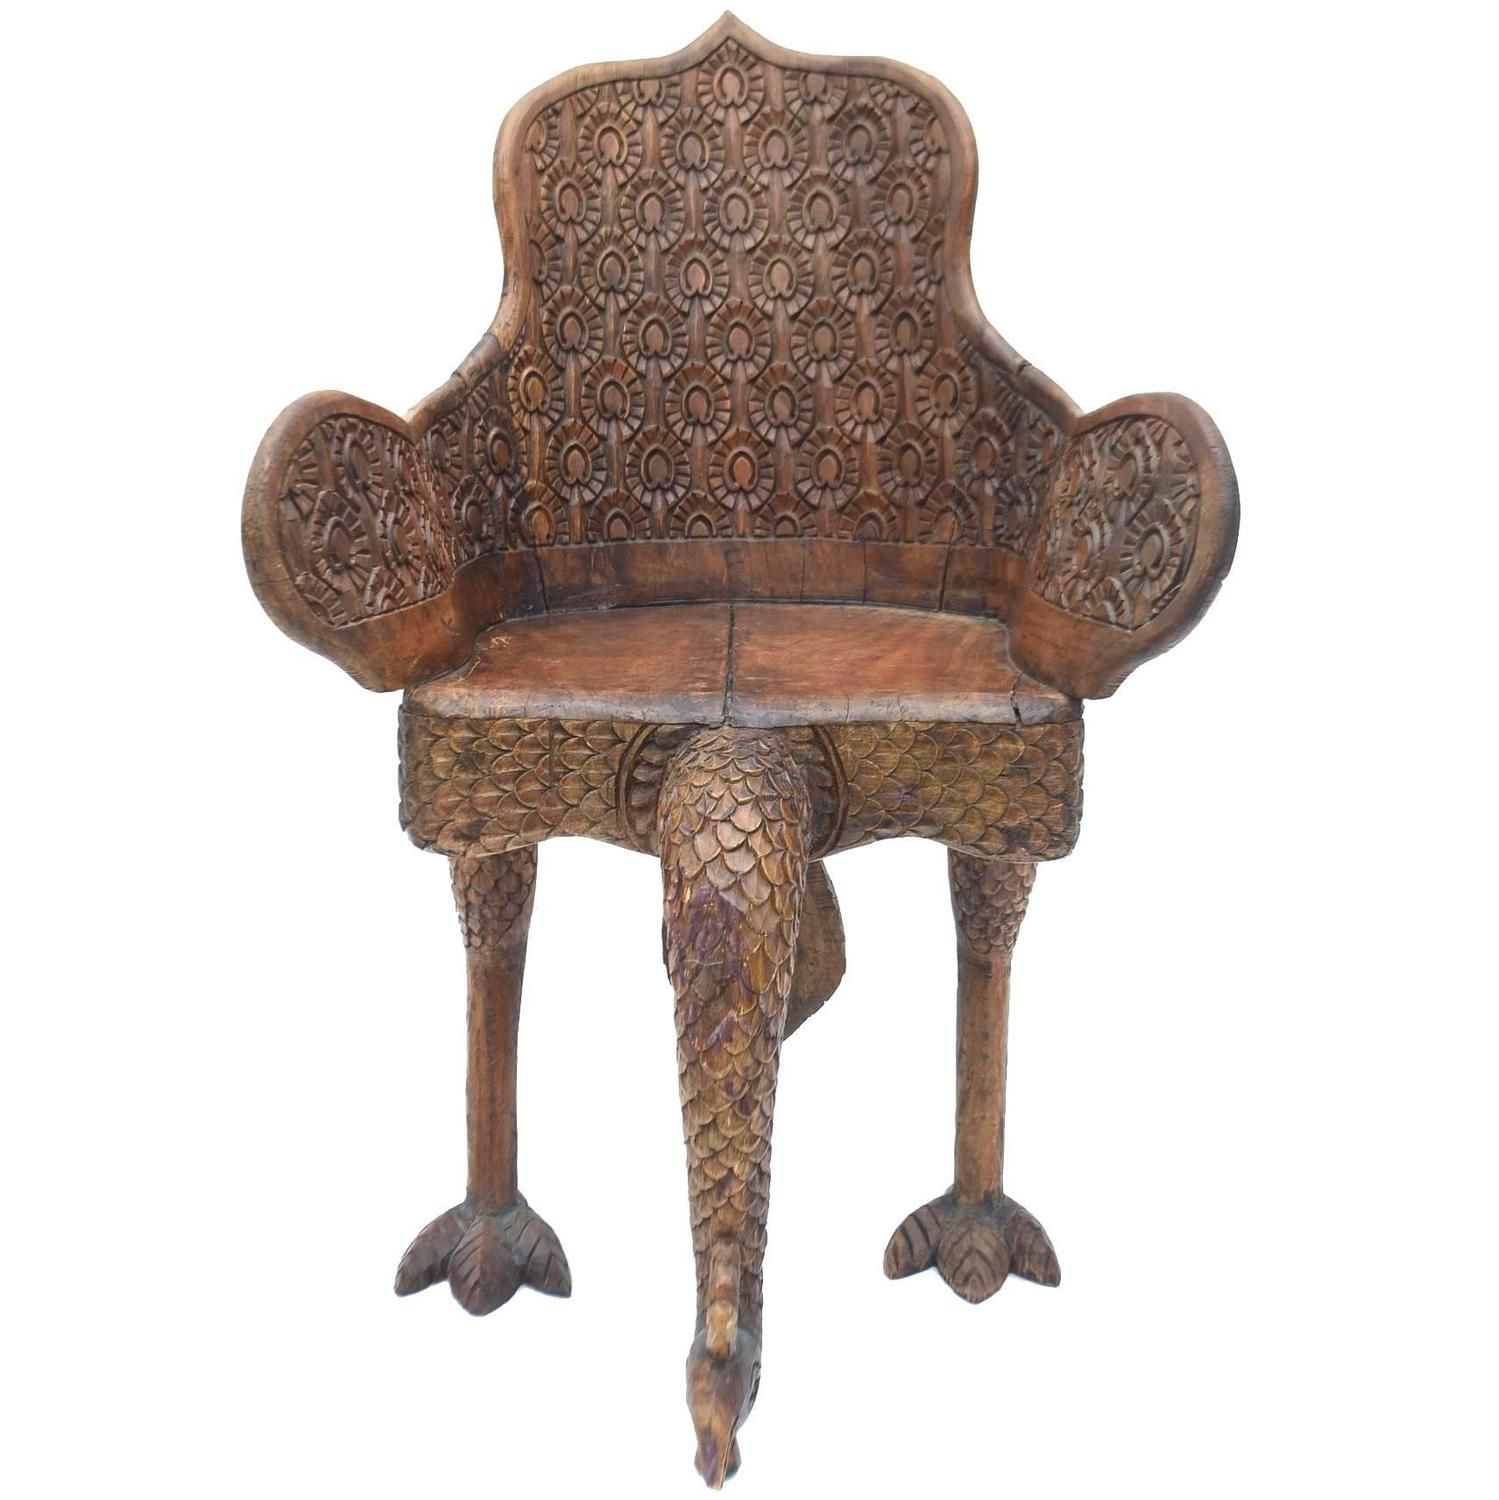 Anglo Indian Carved Peacock Chair Chair and ottoman set